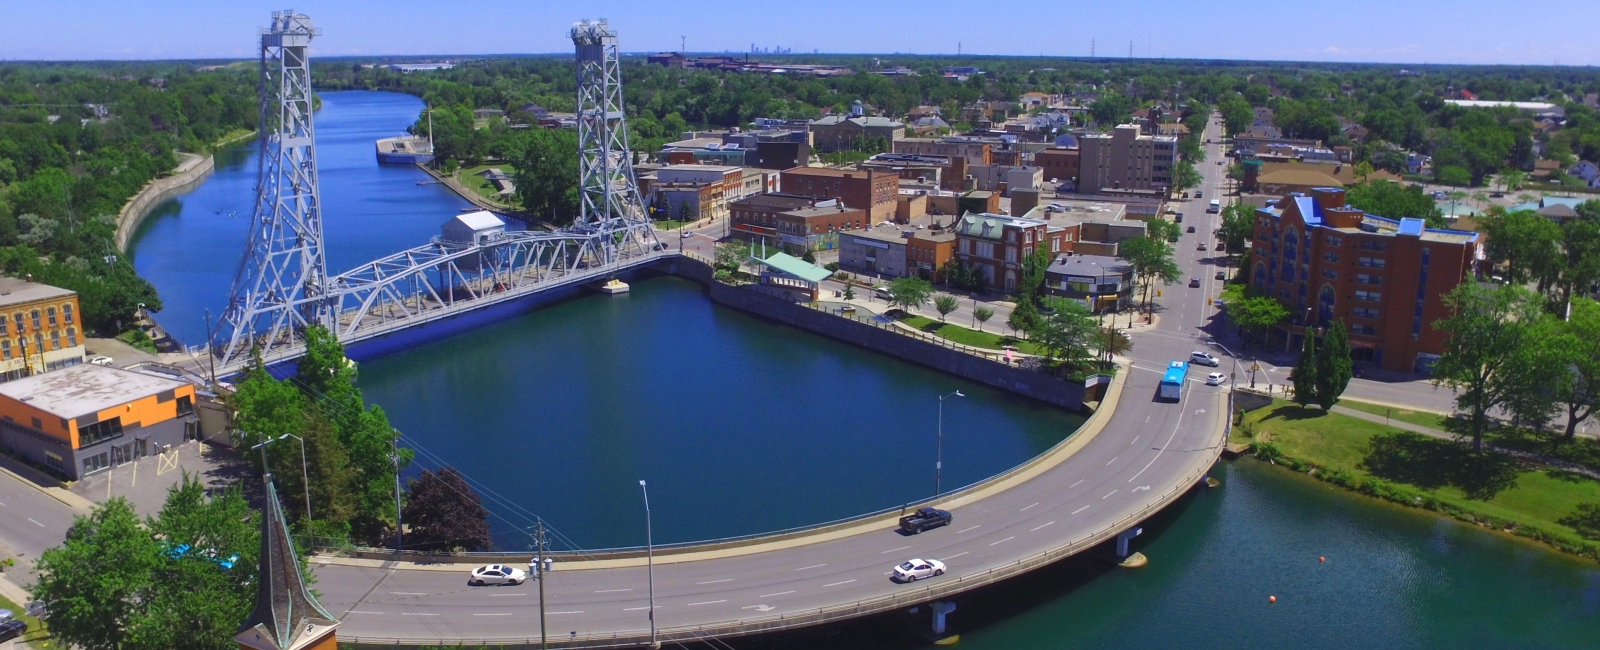 downtown welland aerial bridge 13